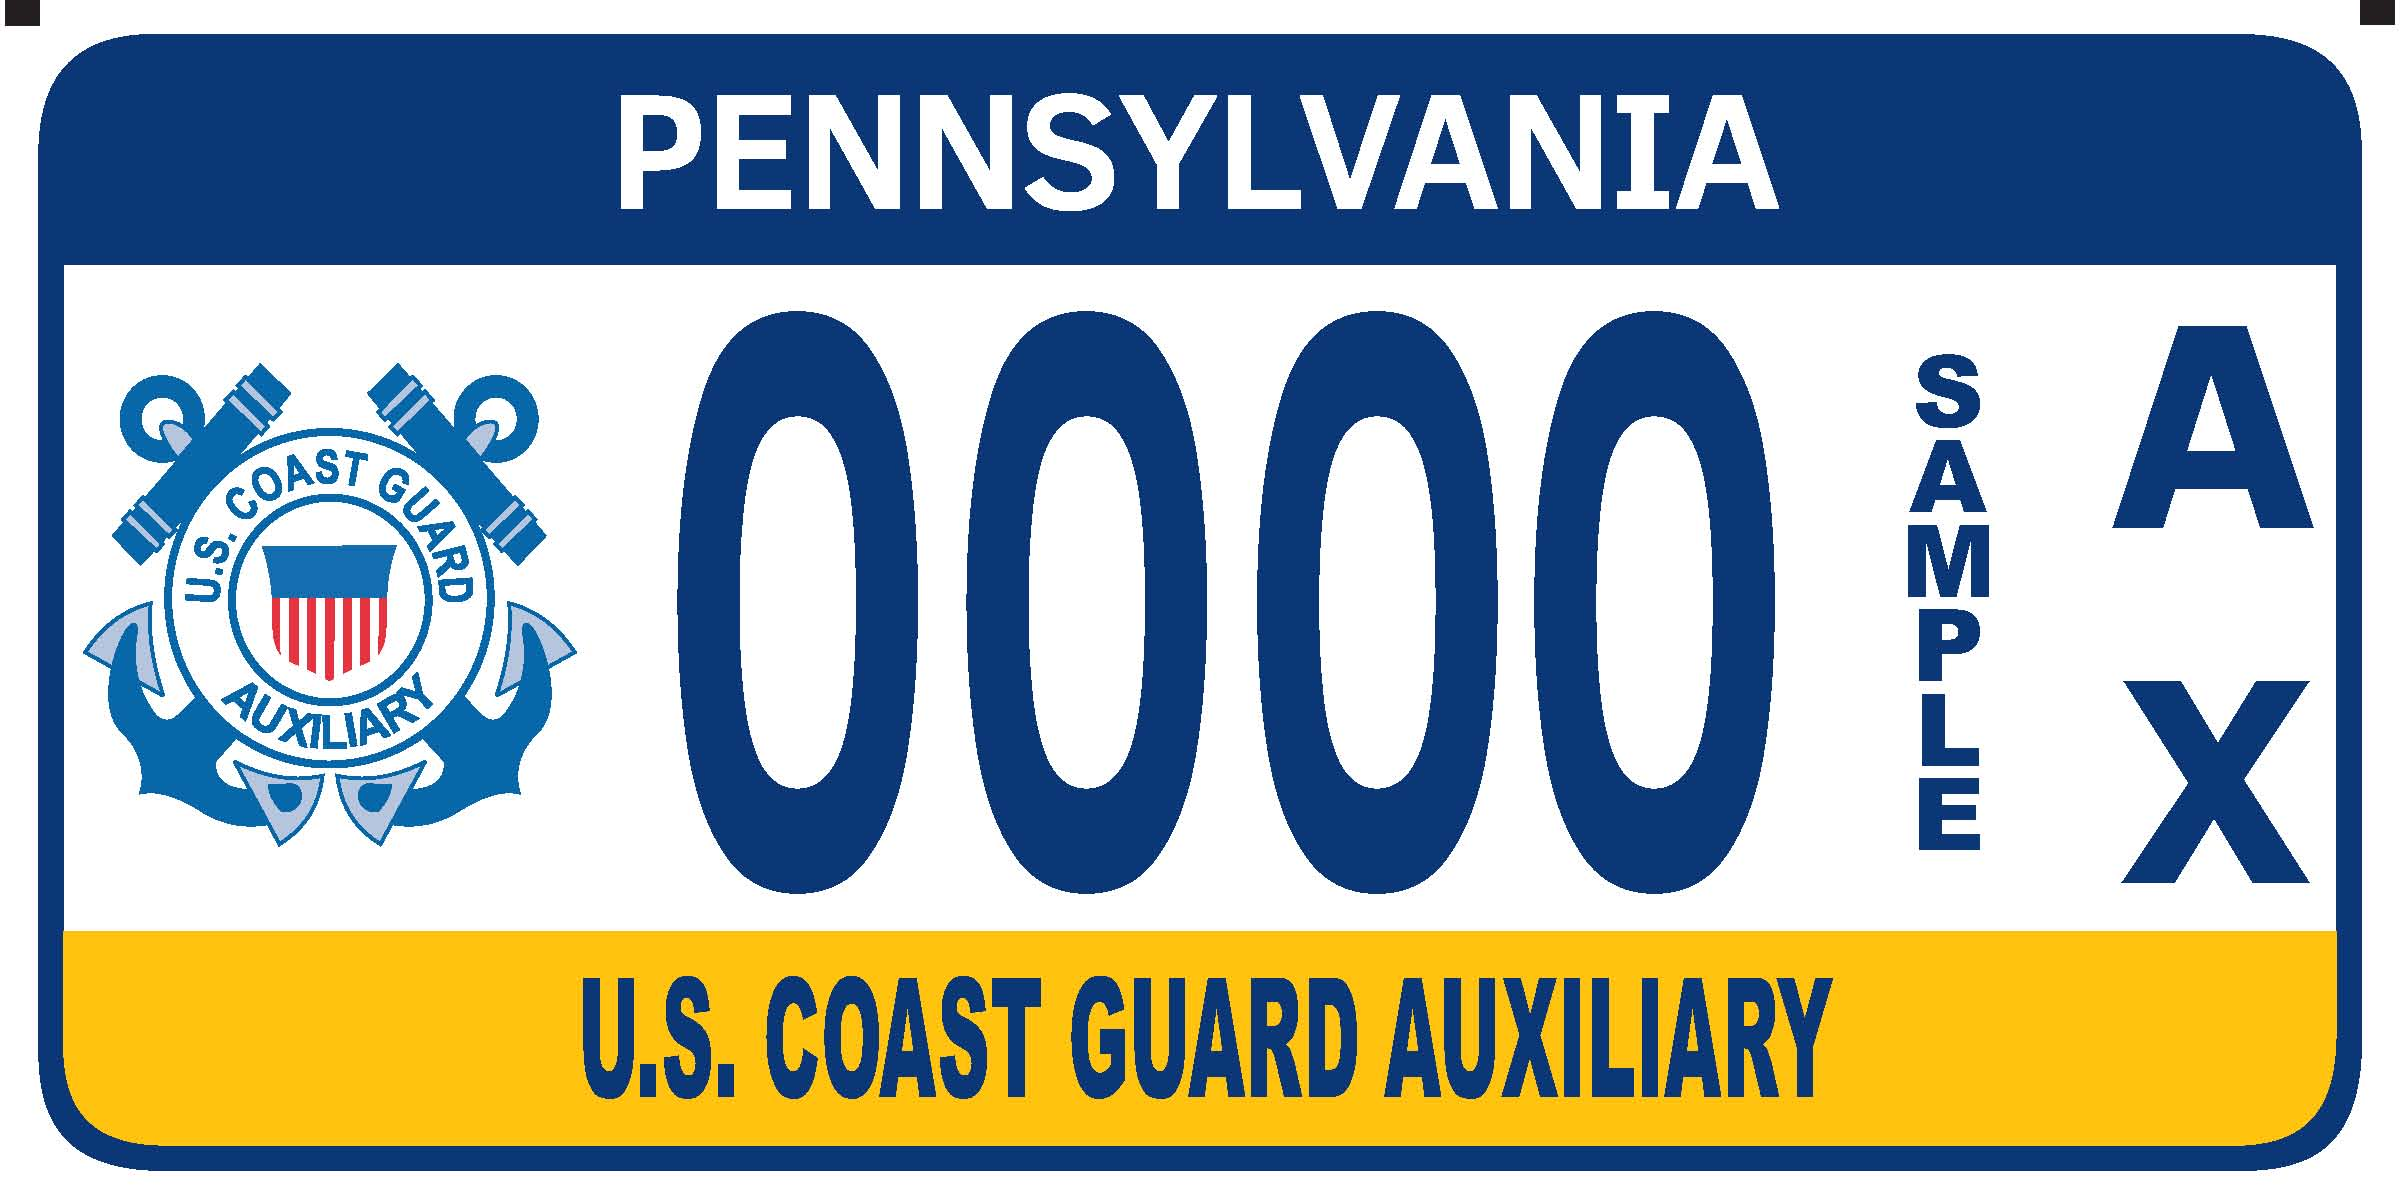 U.S. Coast Guard Auxillary